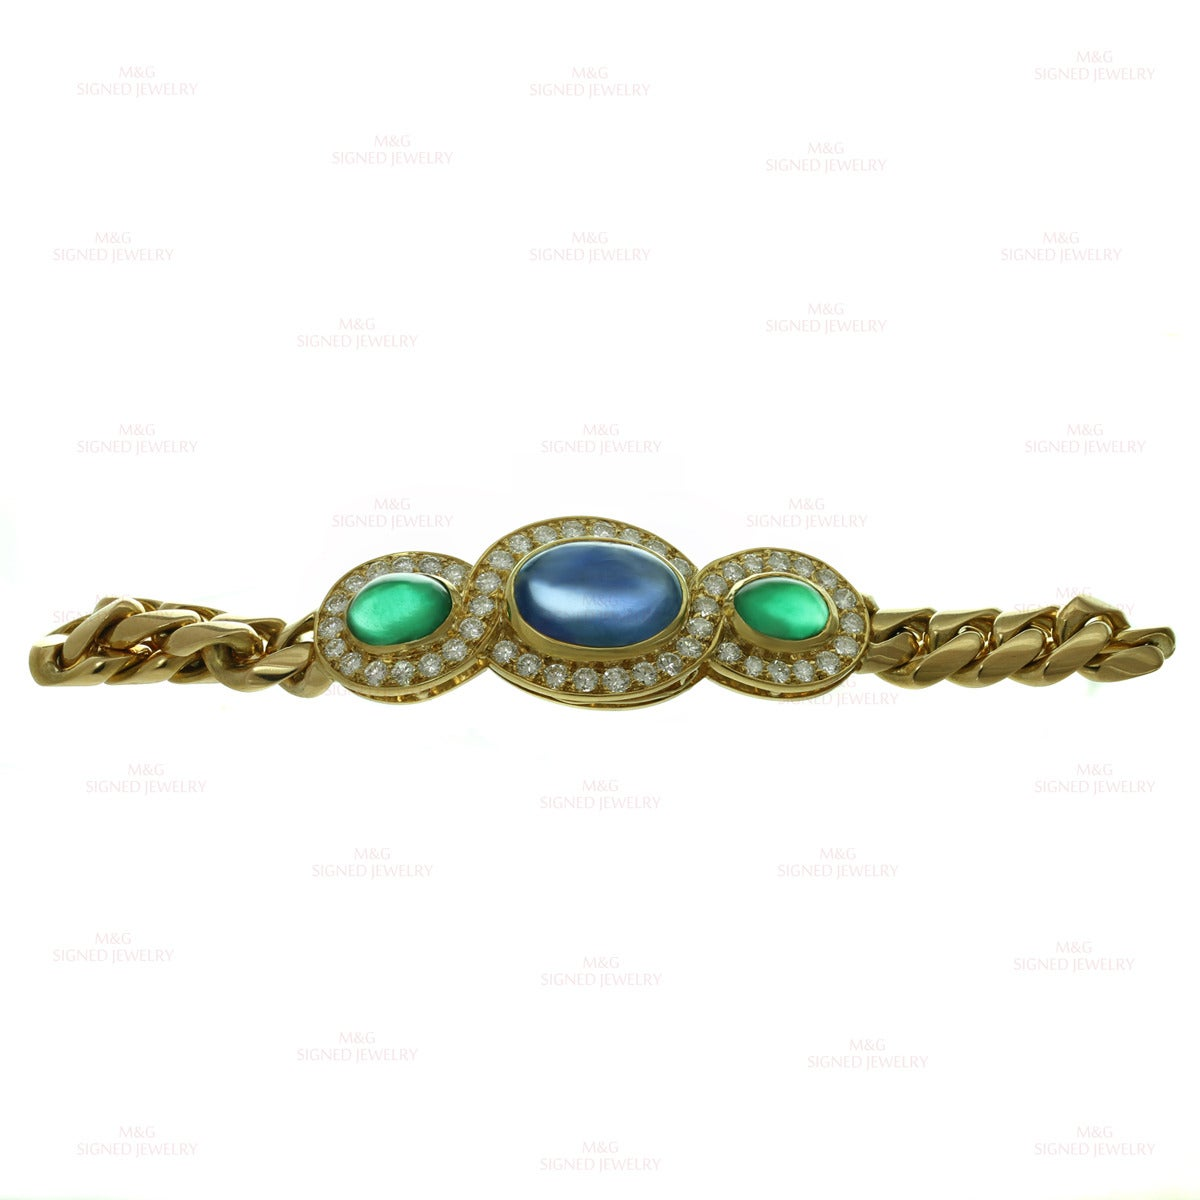 This fabulous Bulgari bracelet is made in 18k yellow gold and set with a blue oval cabochon sapphire measuring 9.0mm x 12.00mm and weighing an estimated 10.5 carats and 2 green oval cabochon emeralds measuring 5.5mm x 7.00mm and weighing an